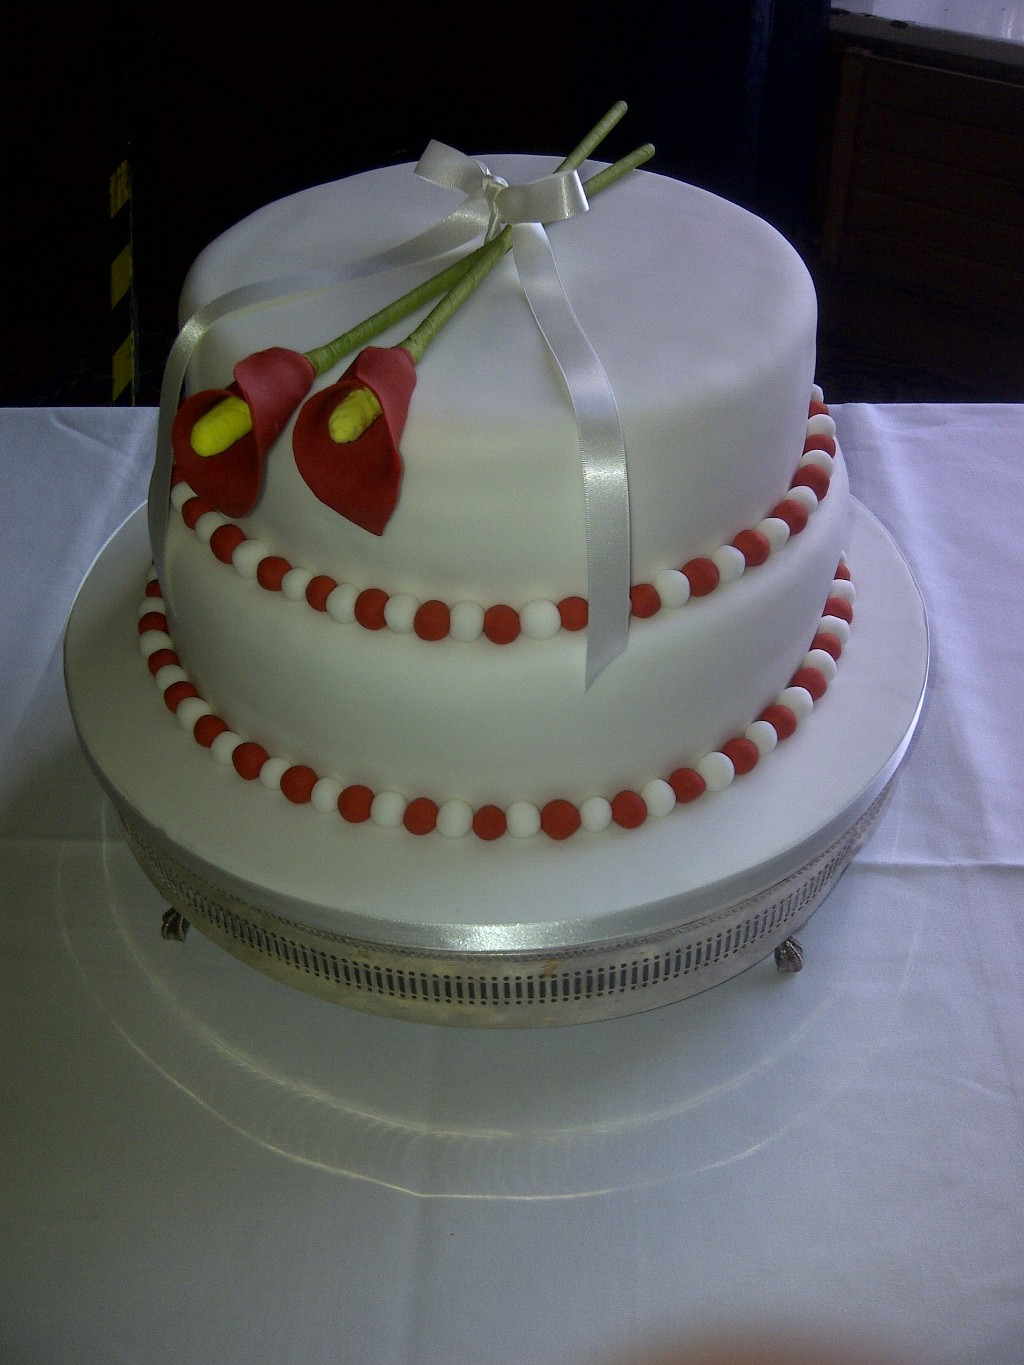 Two Tier White and Red Wedding Cake with Red Sugar Flowers